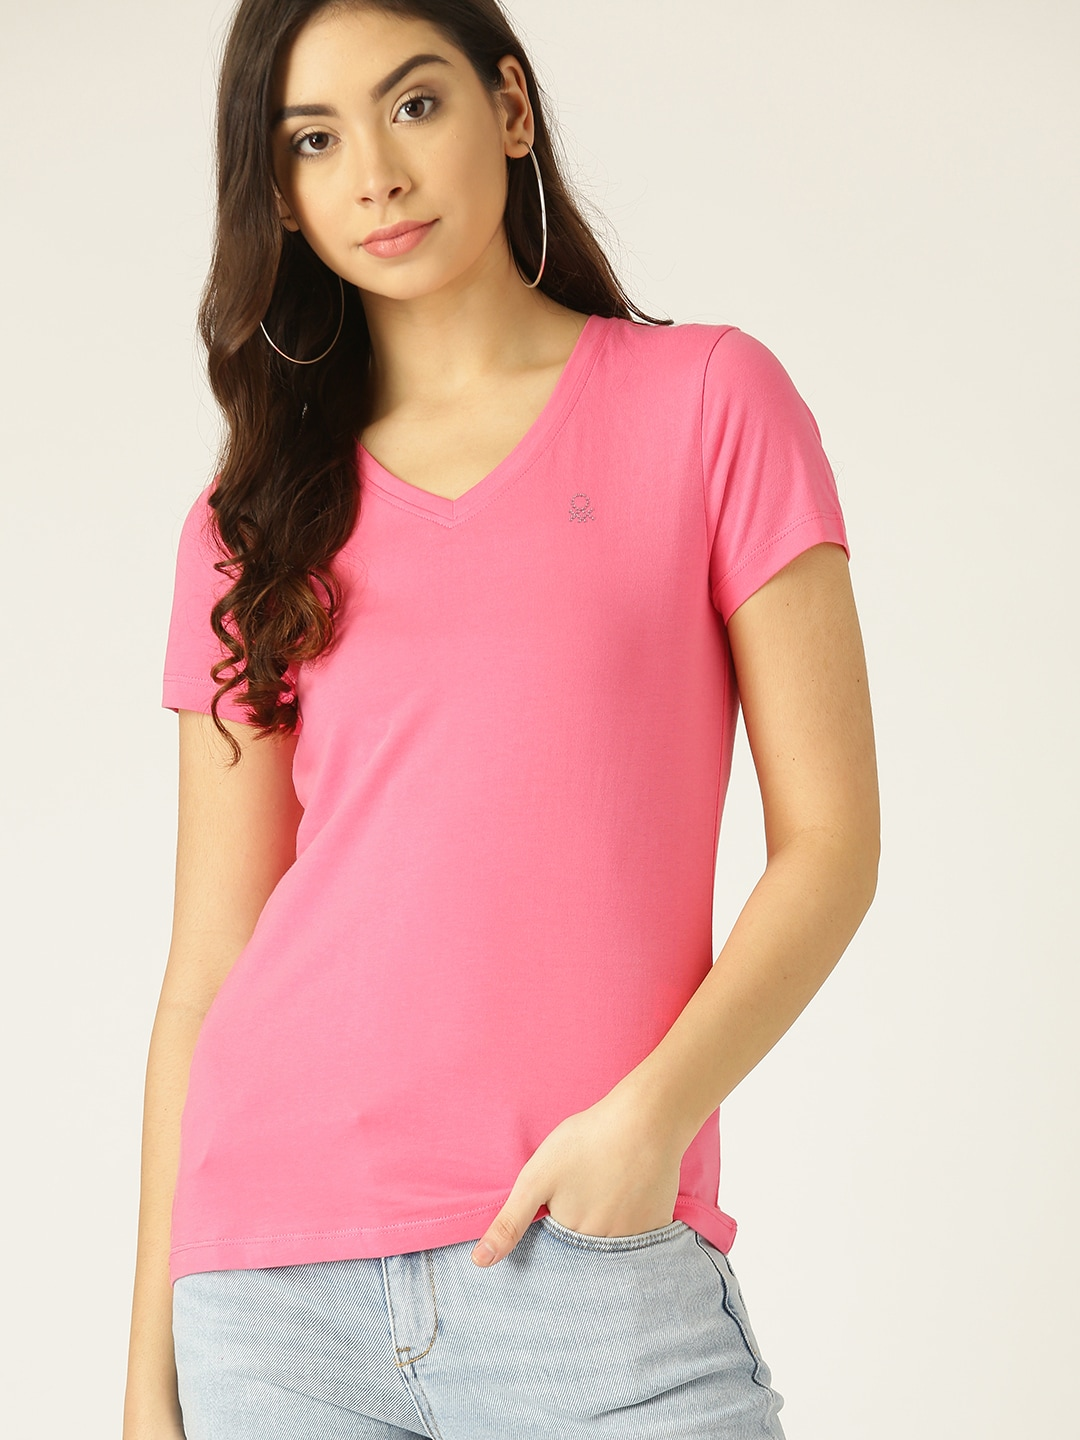 a97b341f3bc481 Ladies Tops - Buy Tops   T-shirts for Women Online